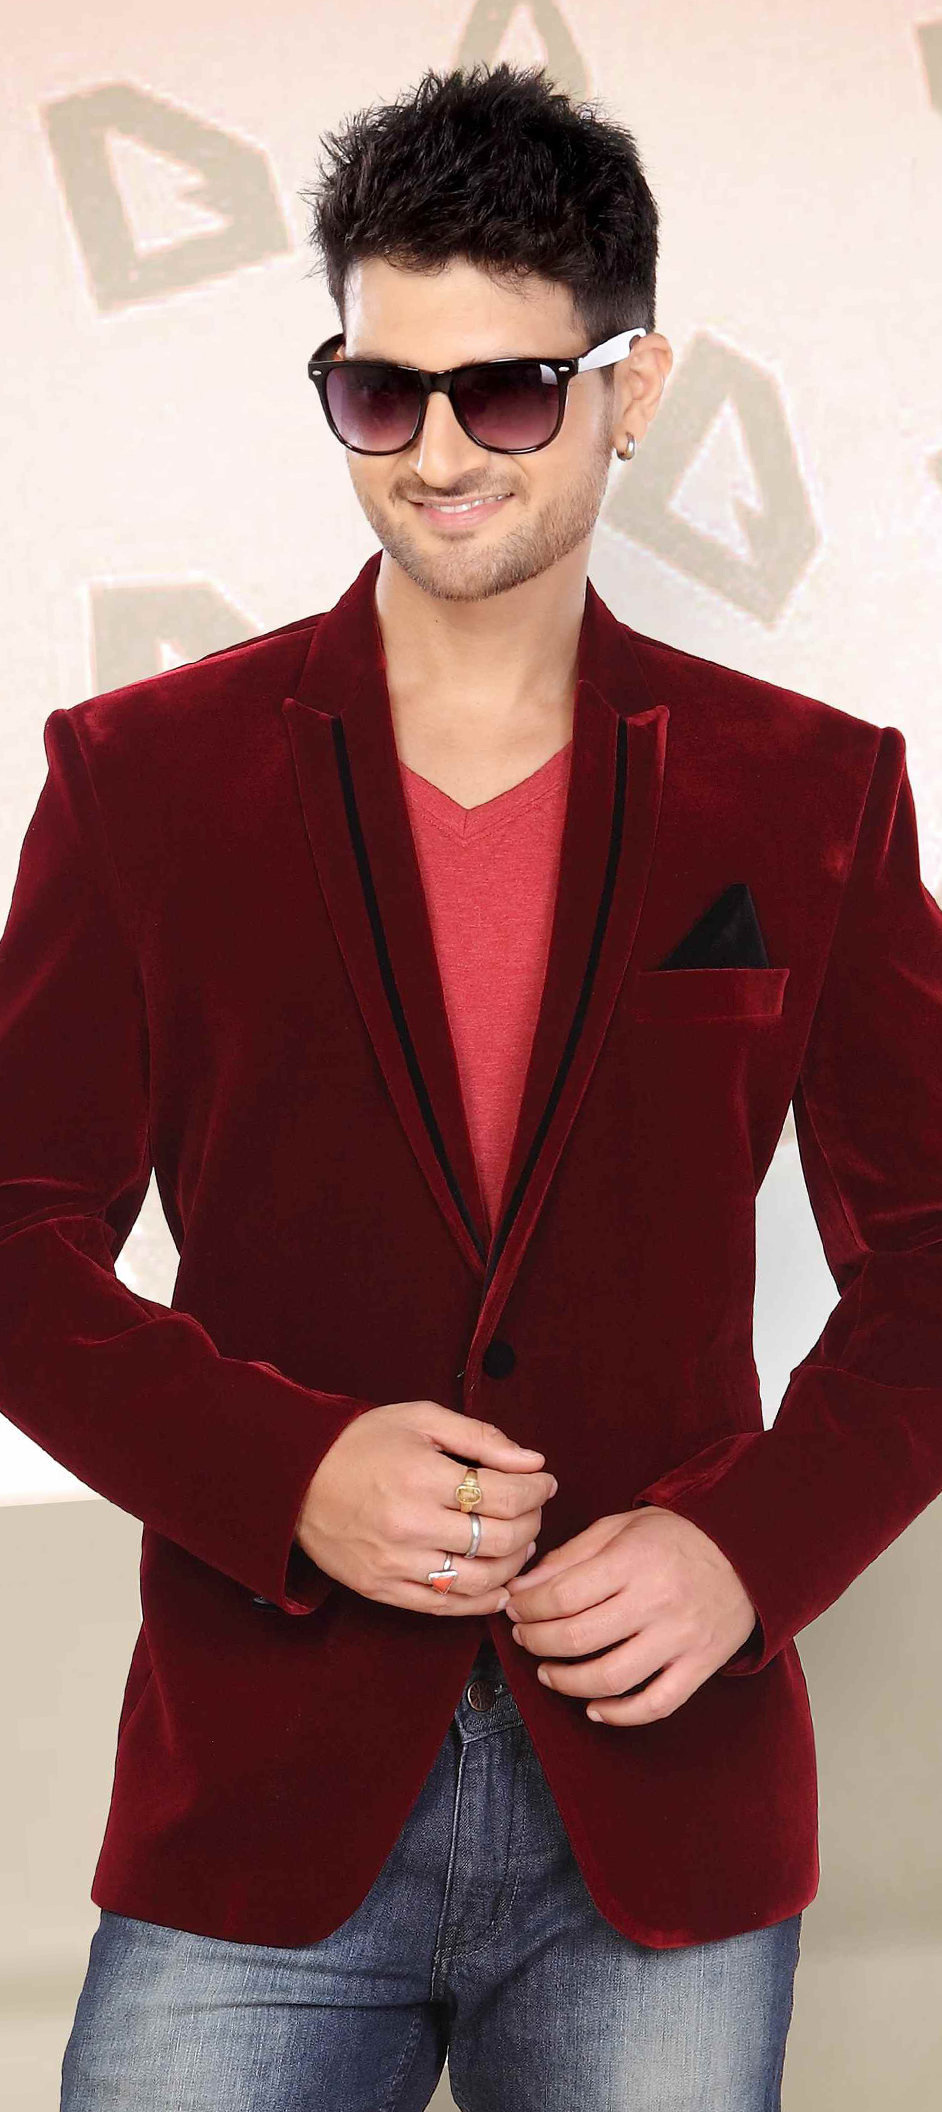 503919: Red and Maroon color family stitched Blazer .